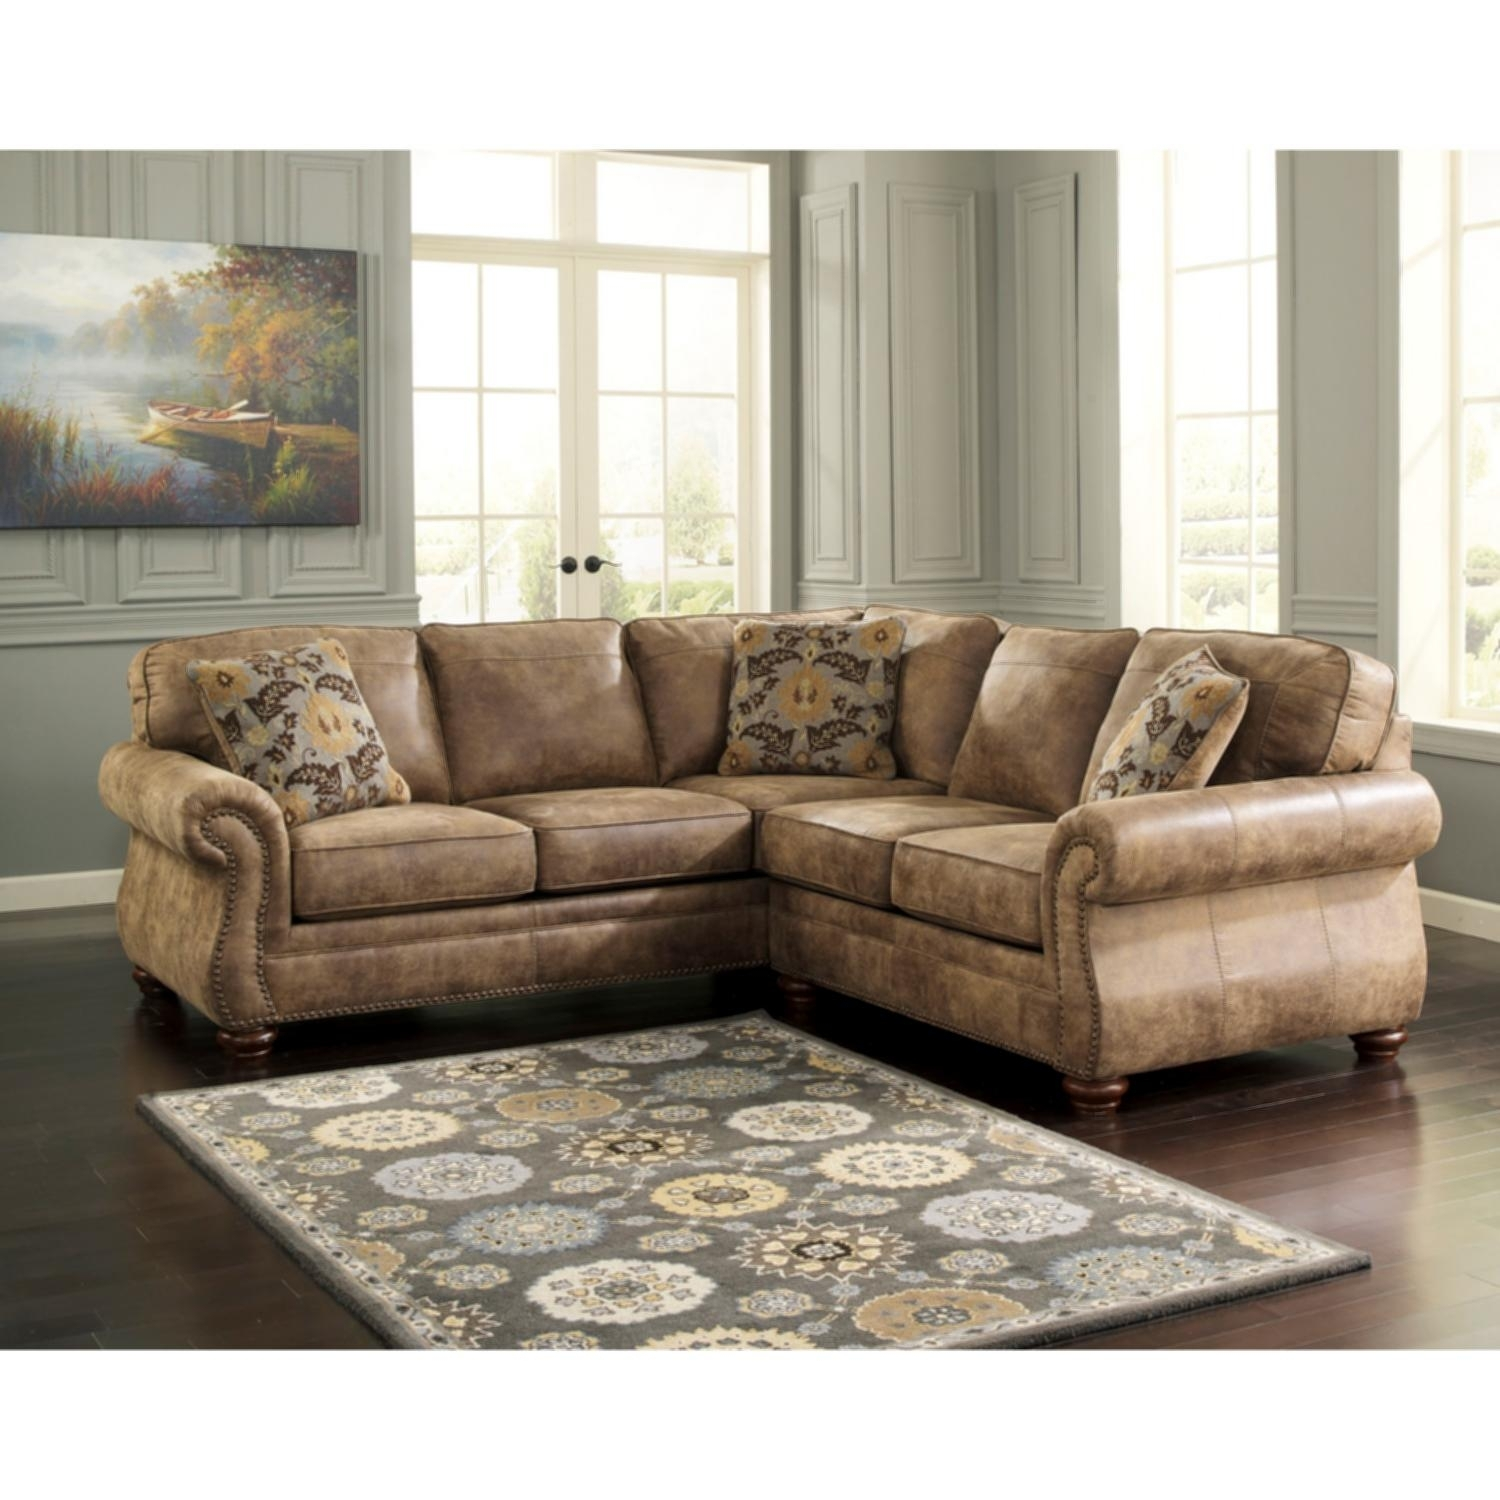 Couches Edmonton 10 Ideas Of Kijiji Edmonton Sectional Sofas Sofa Ideas